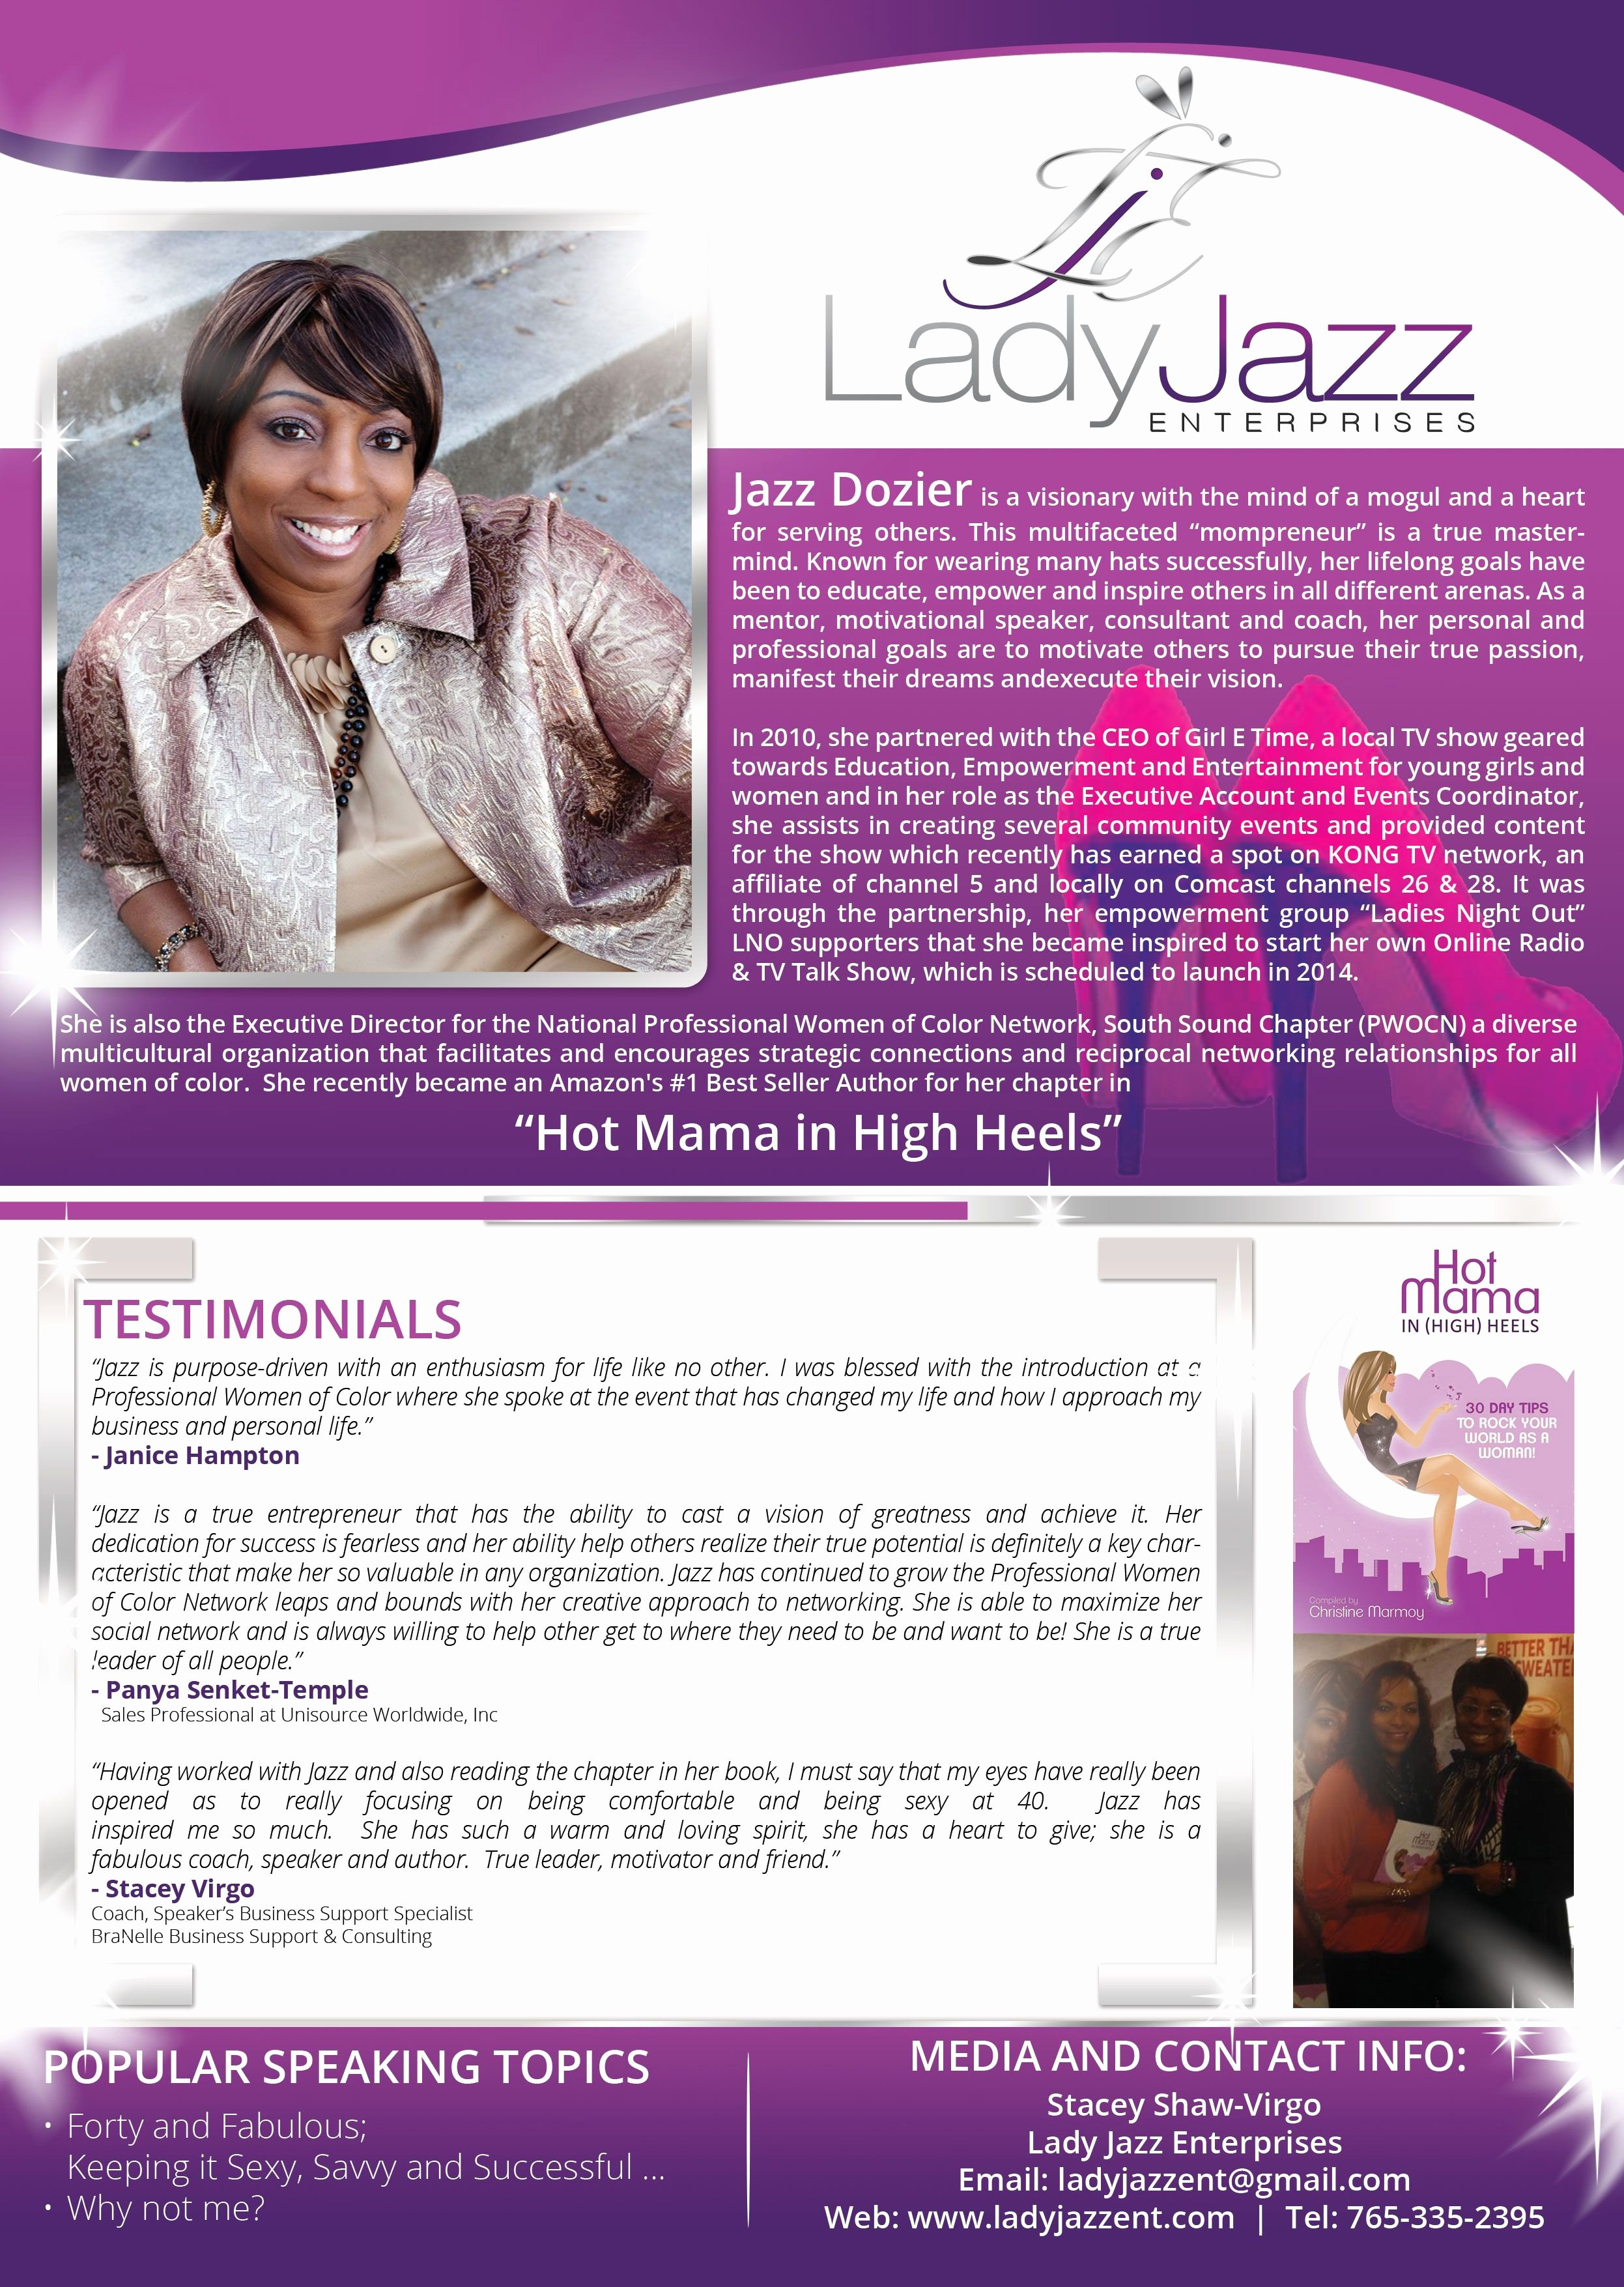 Event One Sheet Template Lovely Jazz Dozier Also Known as Lady Jazz Speaker One Sheet